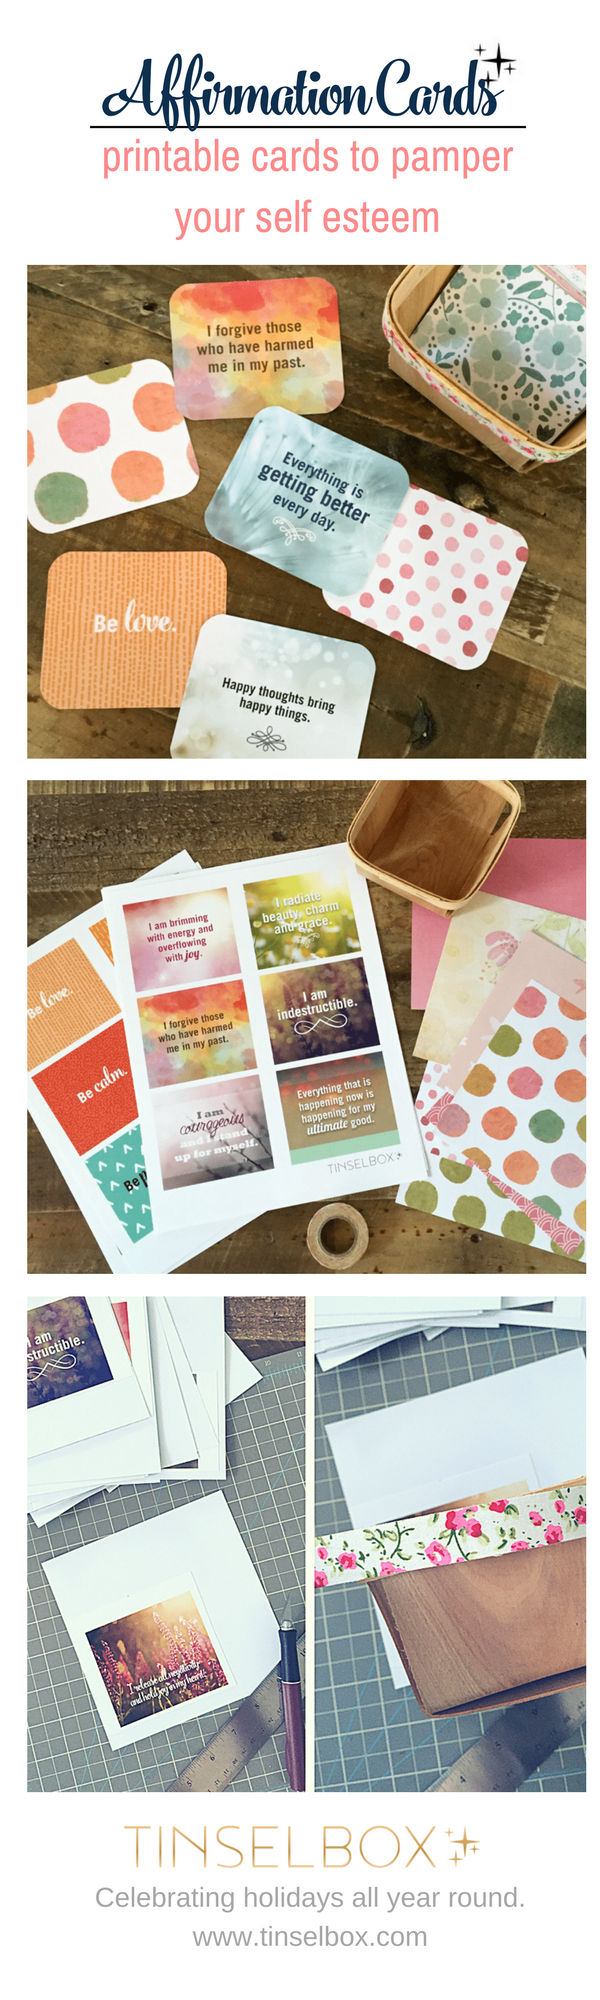 Printable affirmation cards to pamper self esteem.